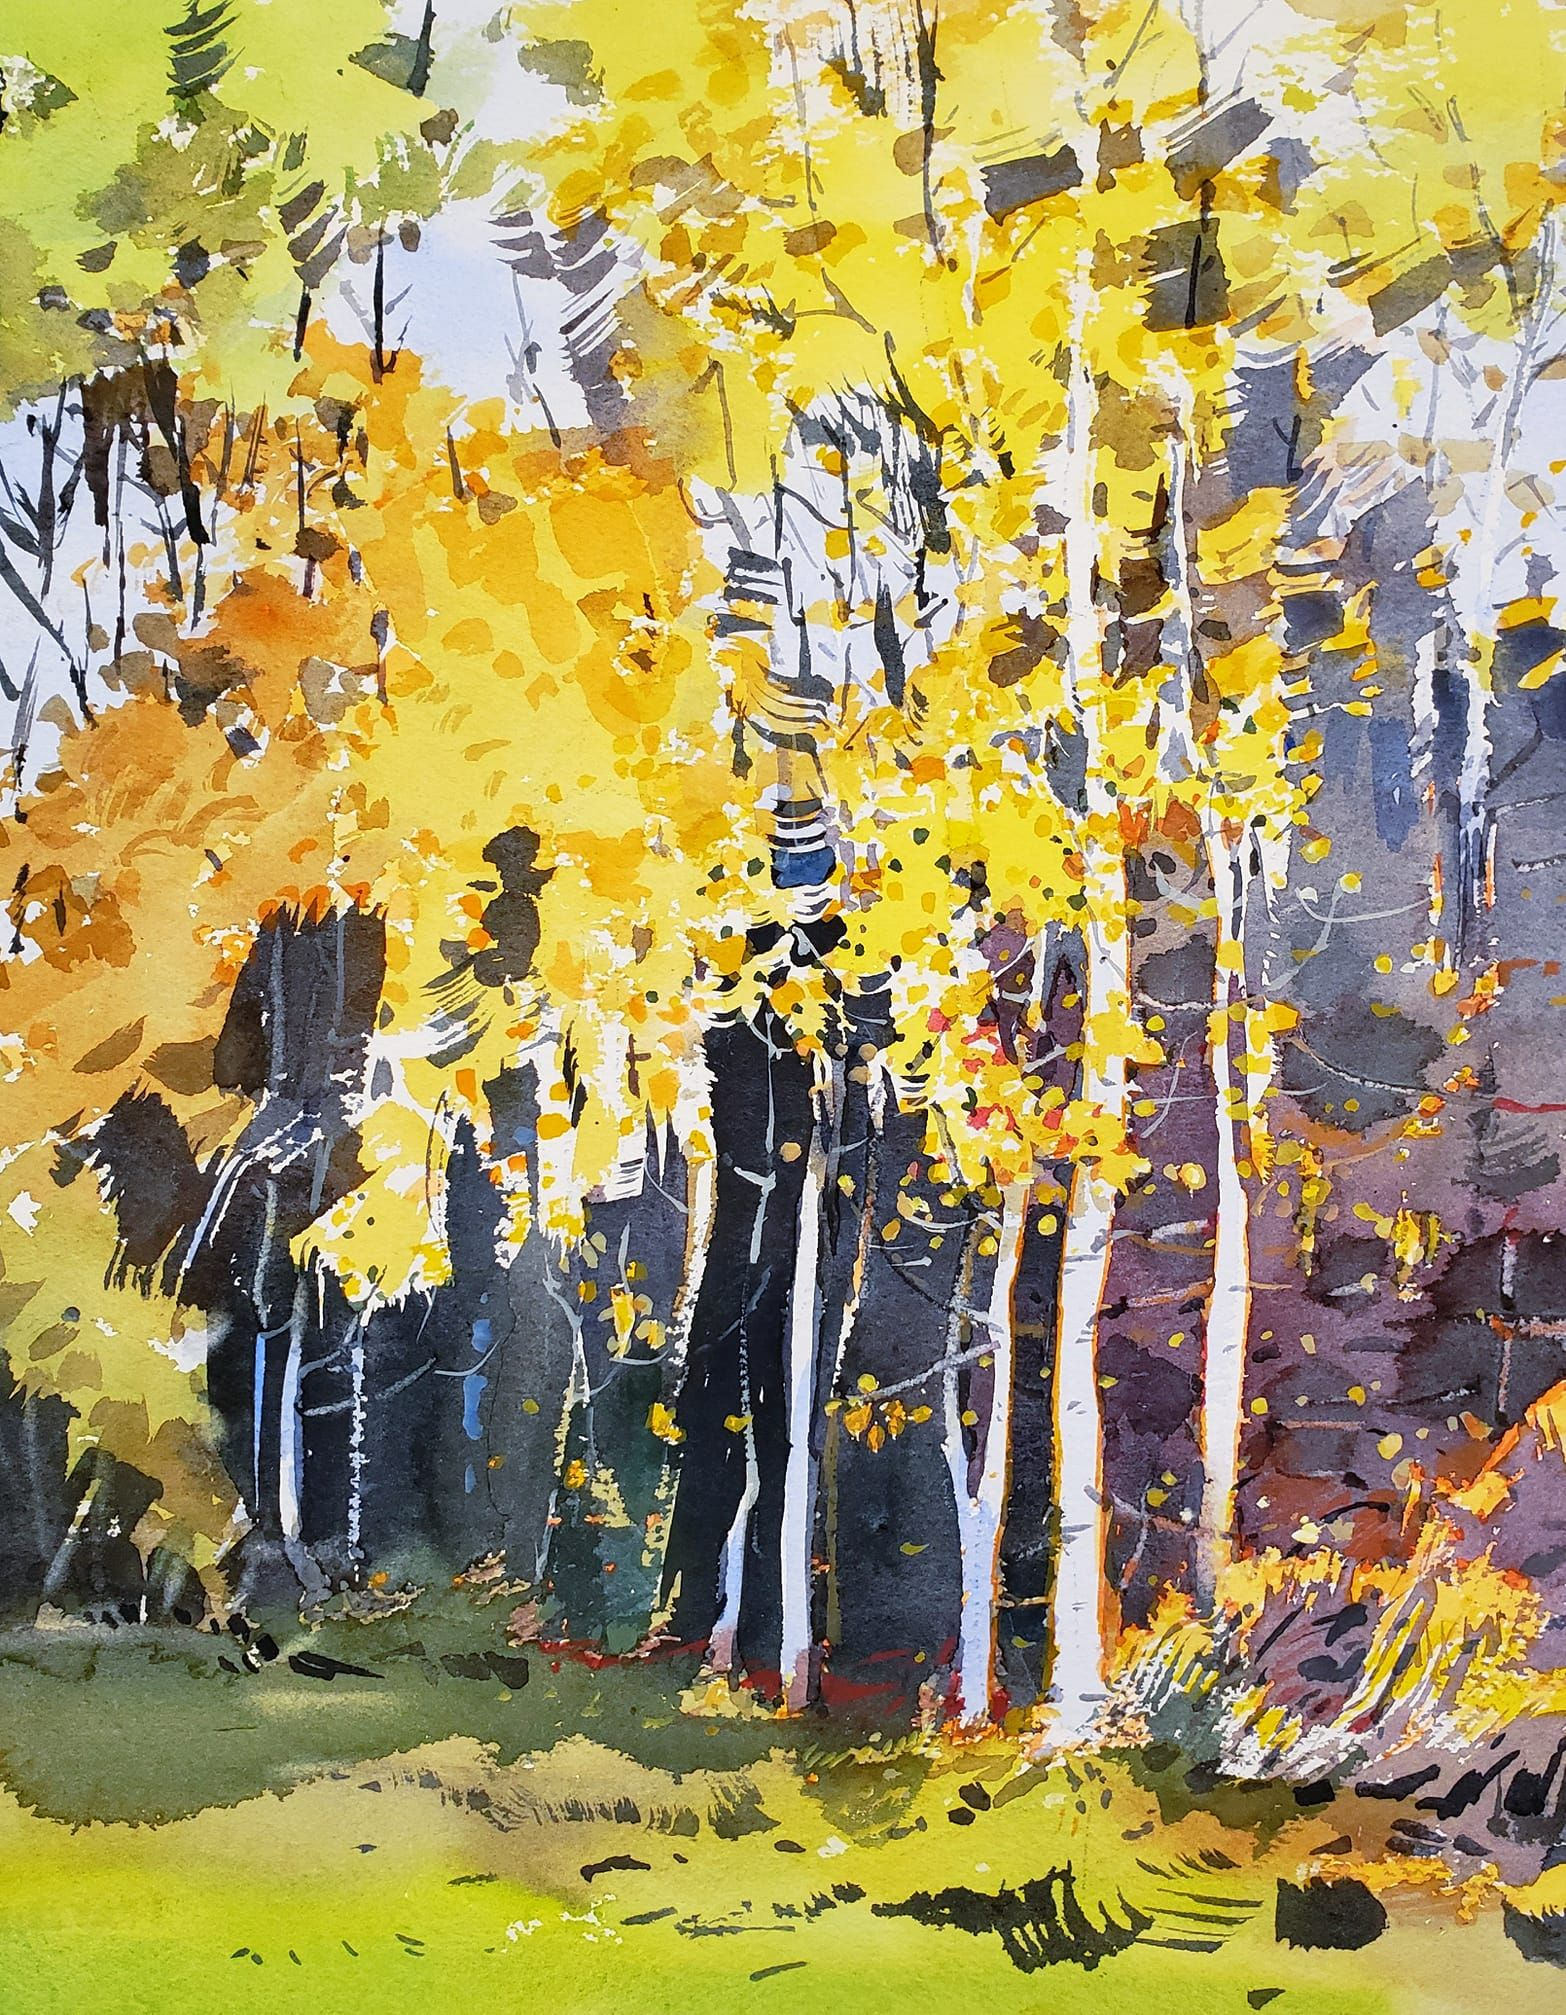 Yong Hong Zhong Painting The Golden Aspen Trees In Beaverton Or